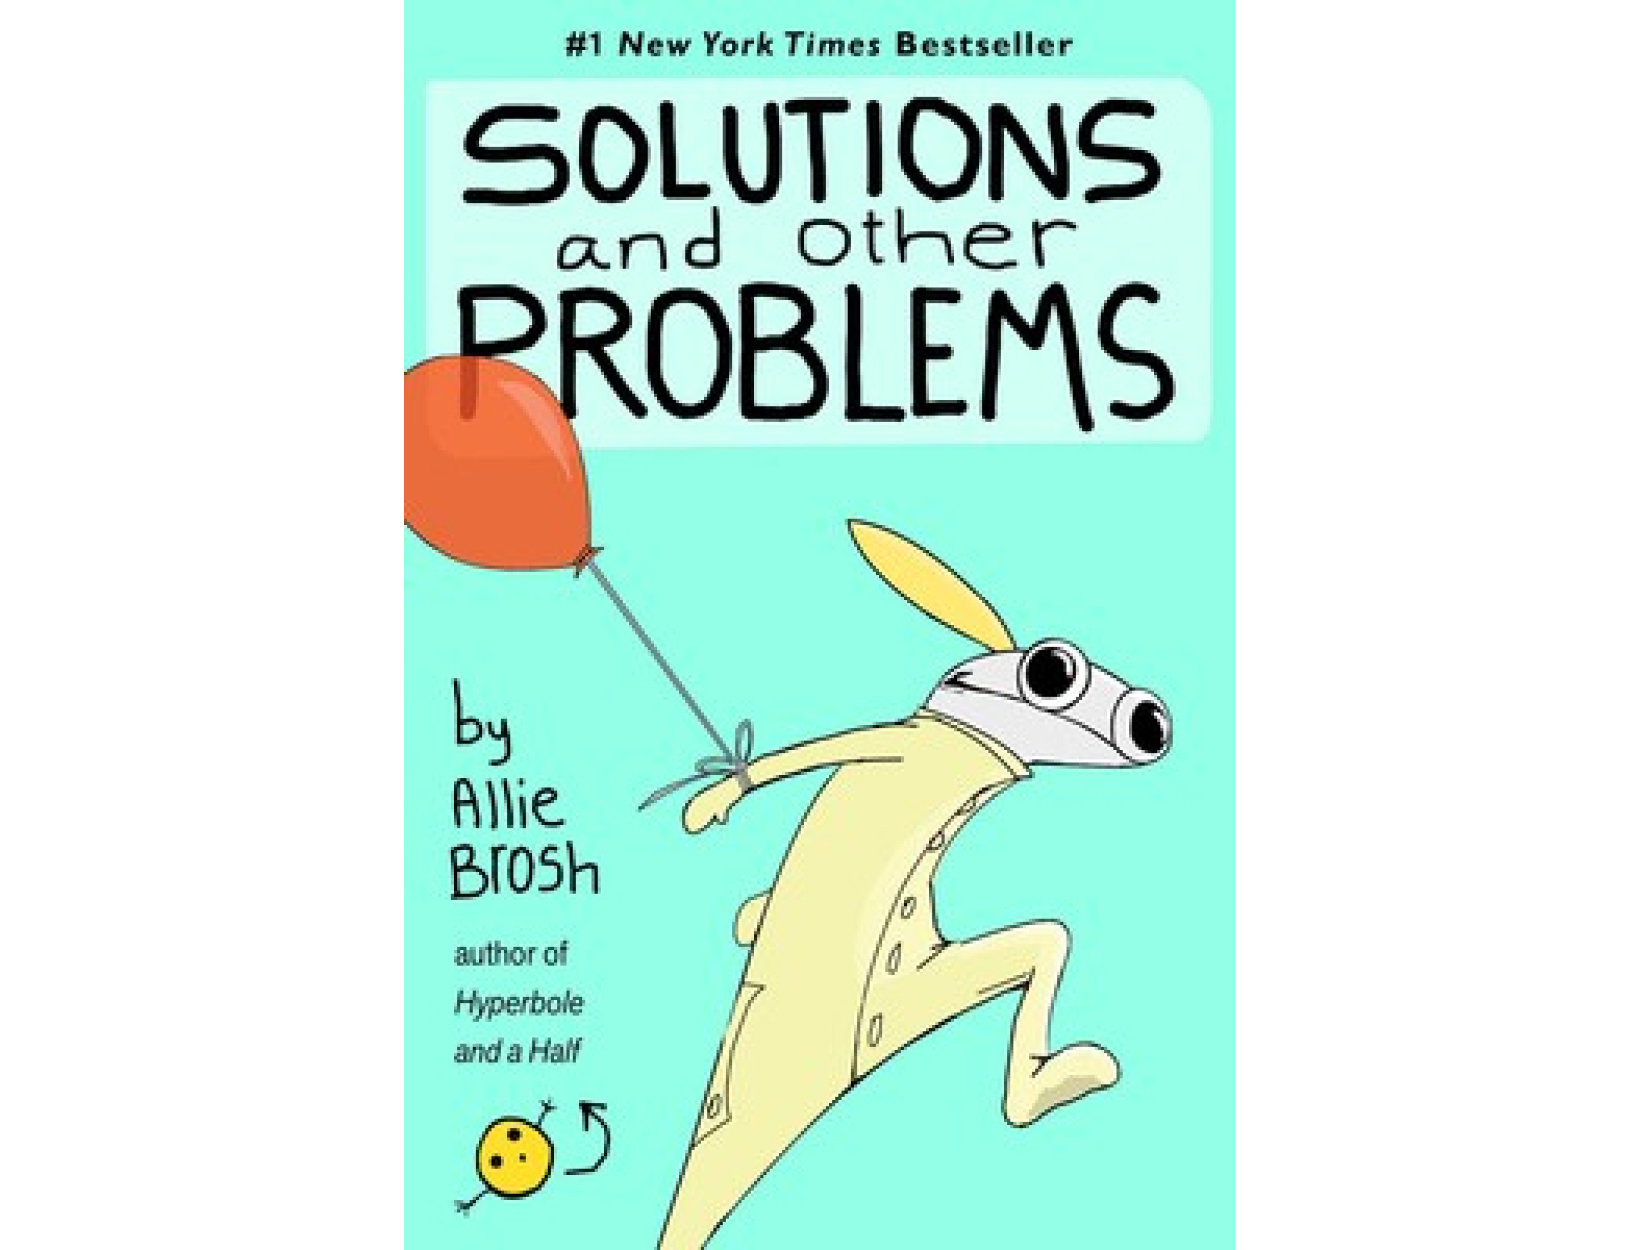 <em>Hyperbole and a Half</em> and <em>Solutions and Other Problems</em> by Allie Brosh